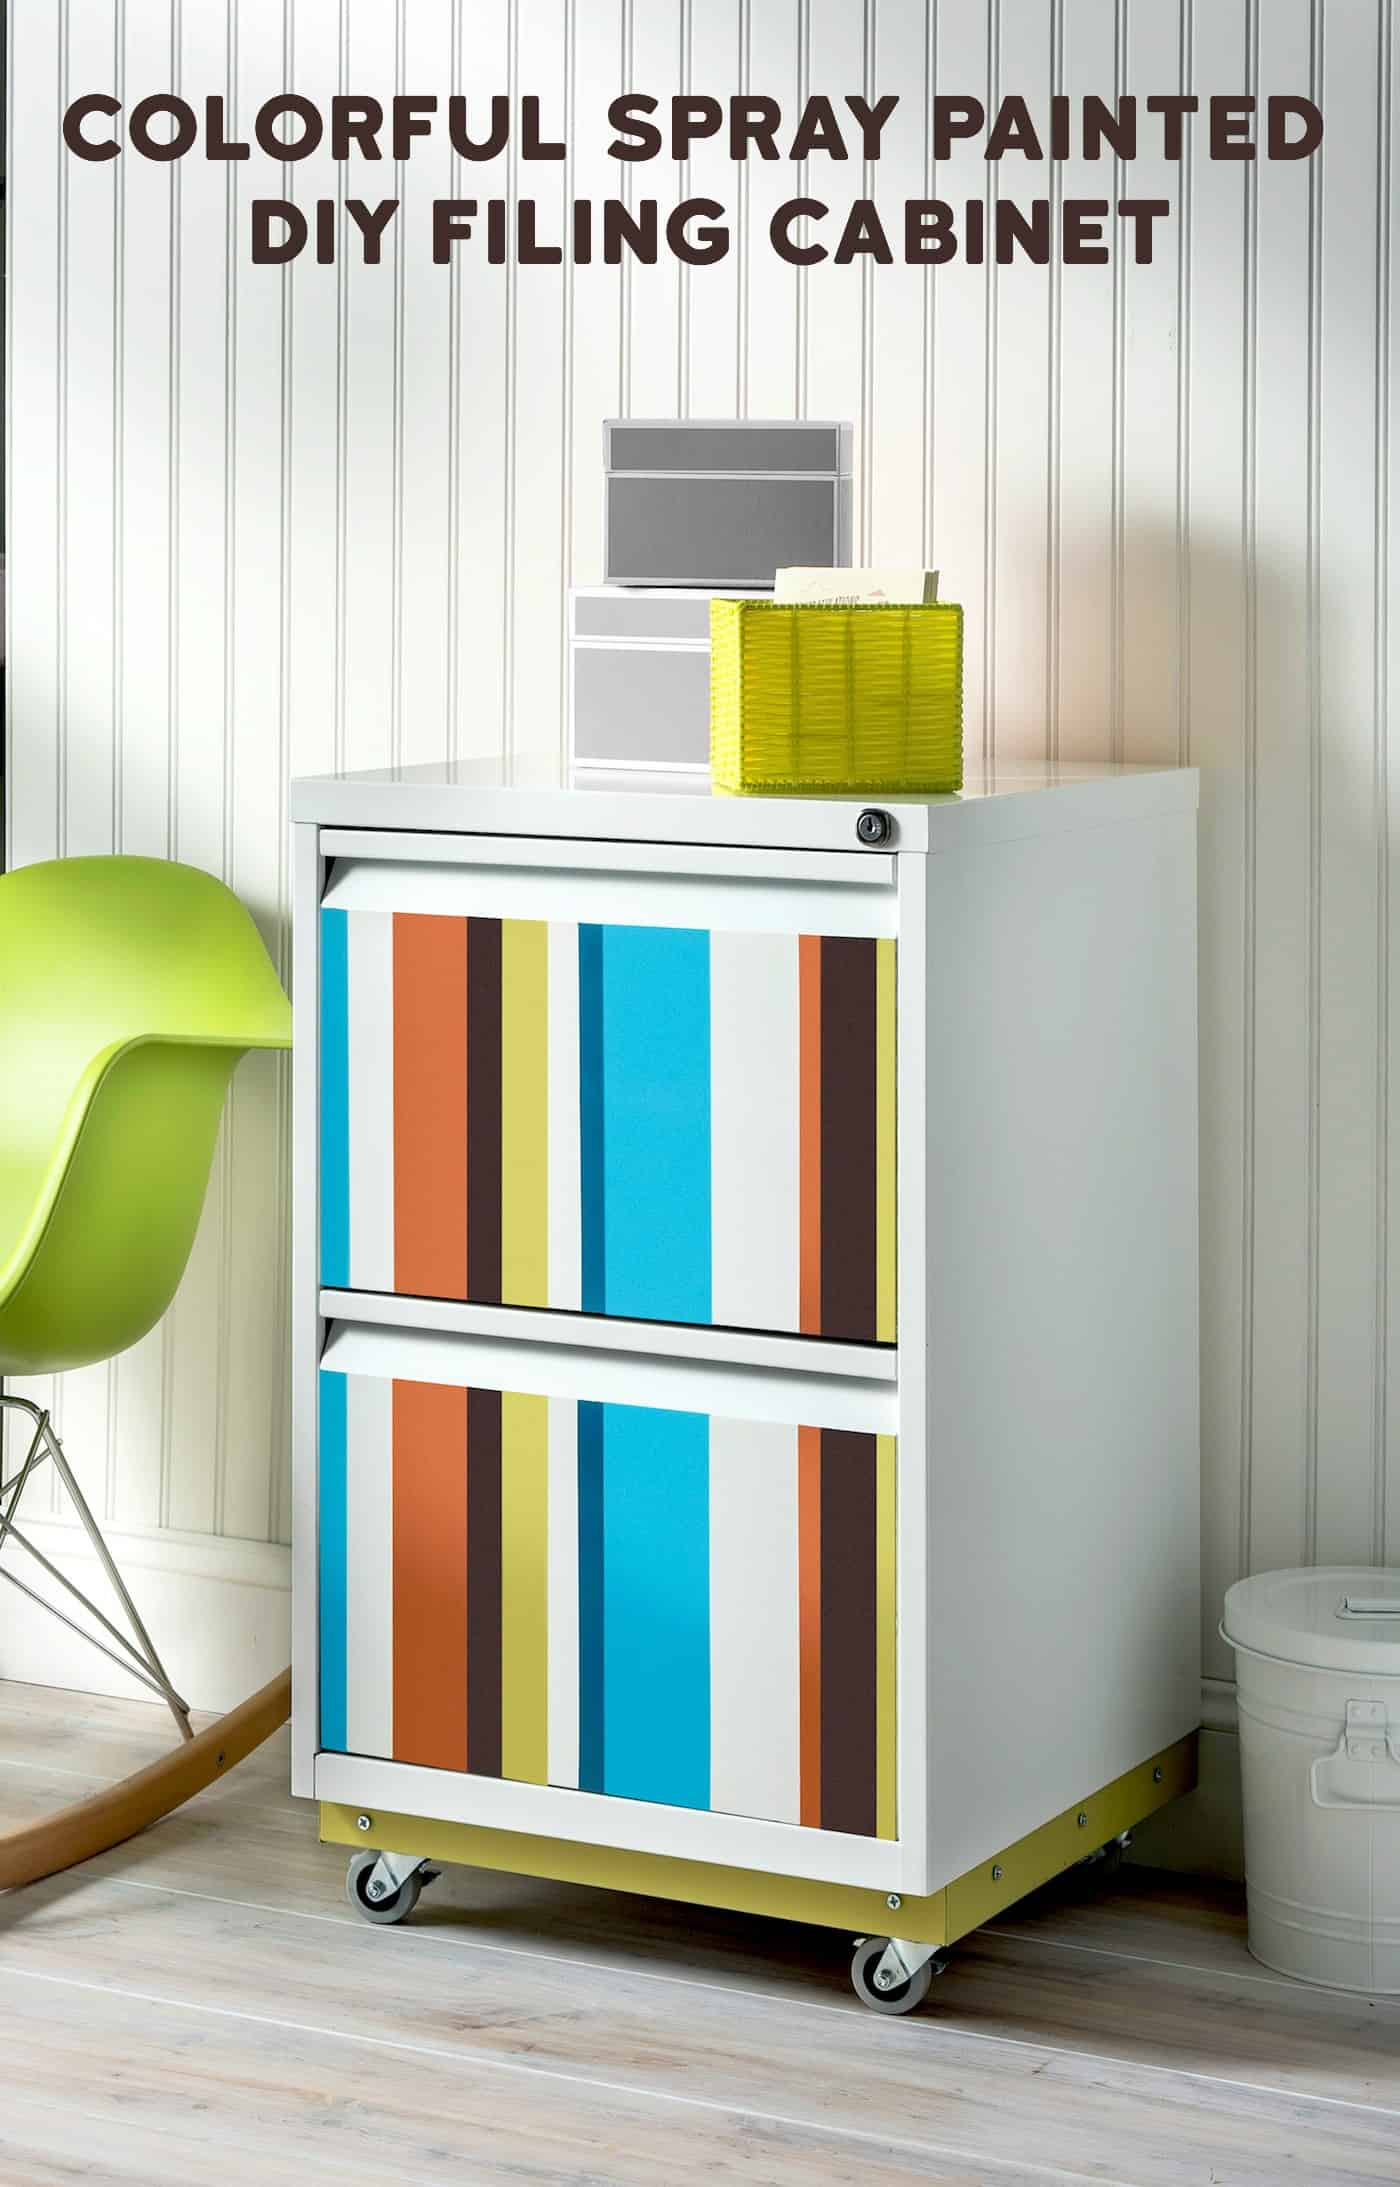 In this easy DIY file cabinet revamp, we took a thrift store find and made it over with existing spray paint. The whole project cost less than $10! If you want to add wheels - I'll show you how to do that too. Click through to see!